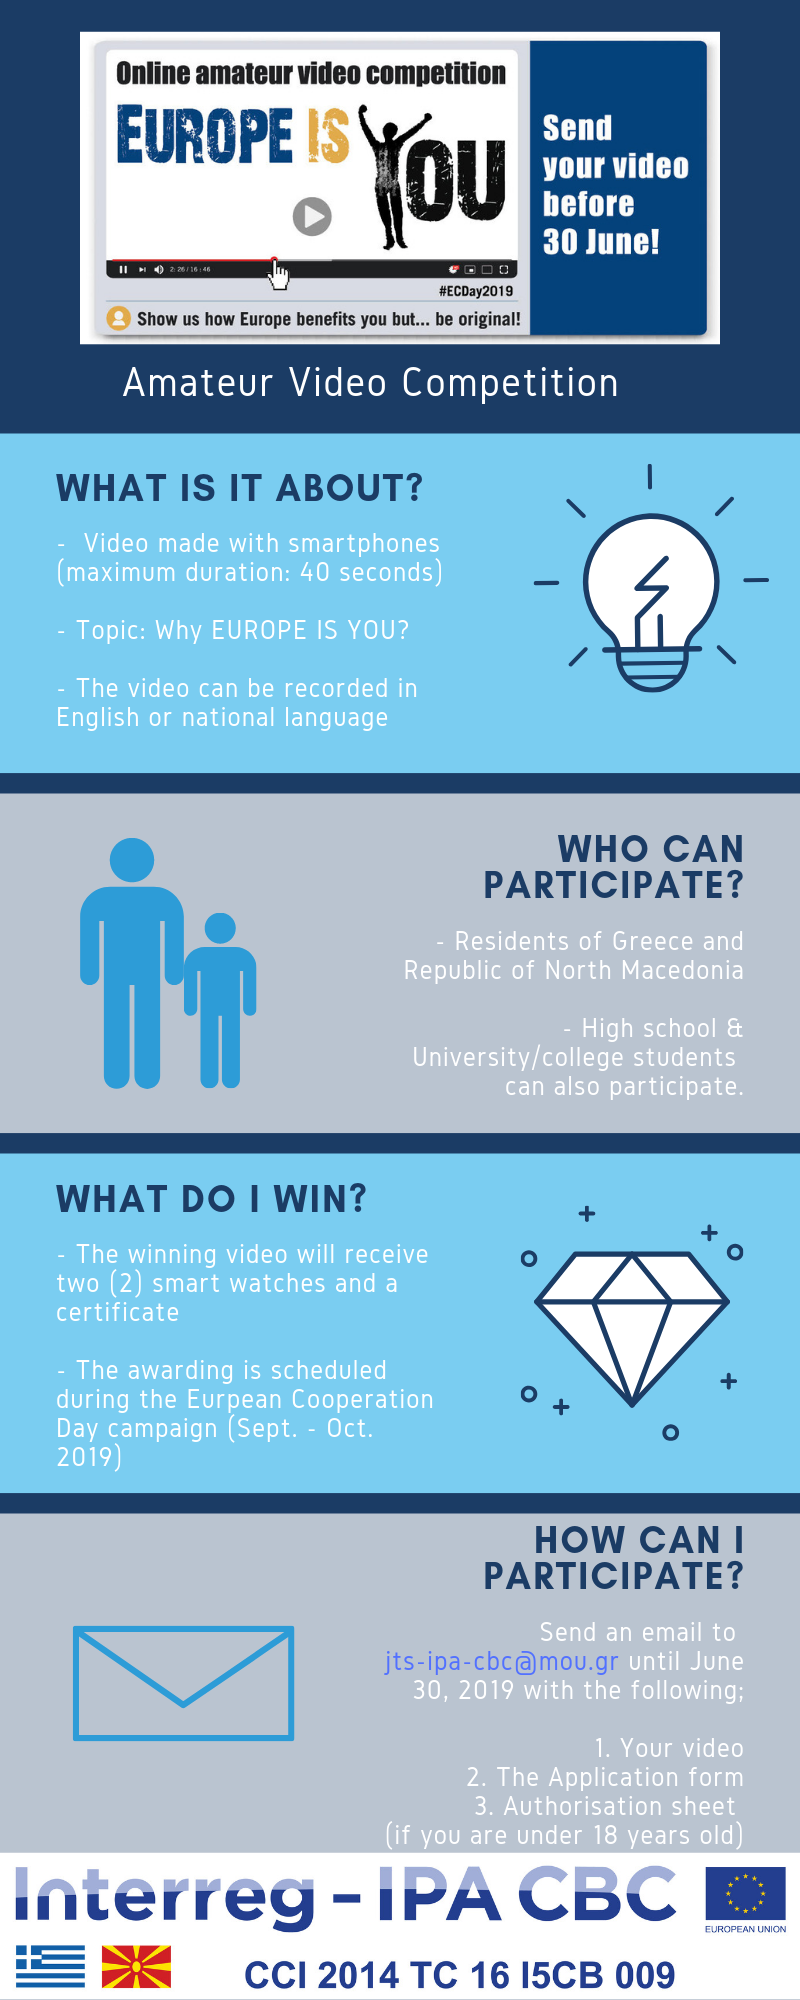 Video Competition EC DAY 2019 infographic